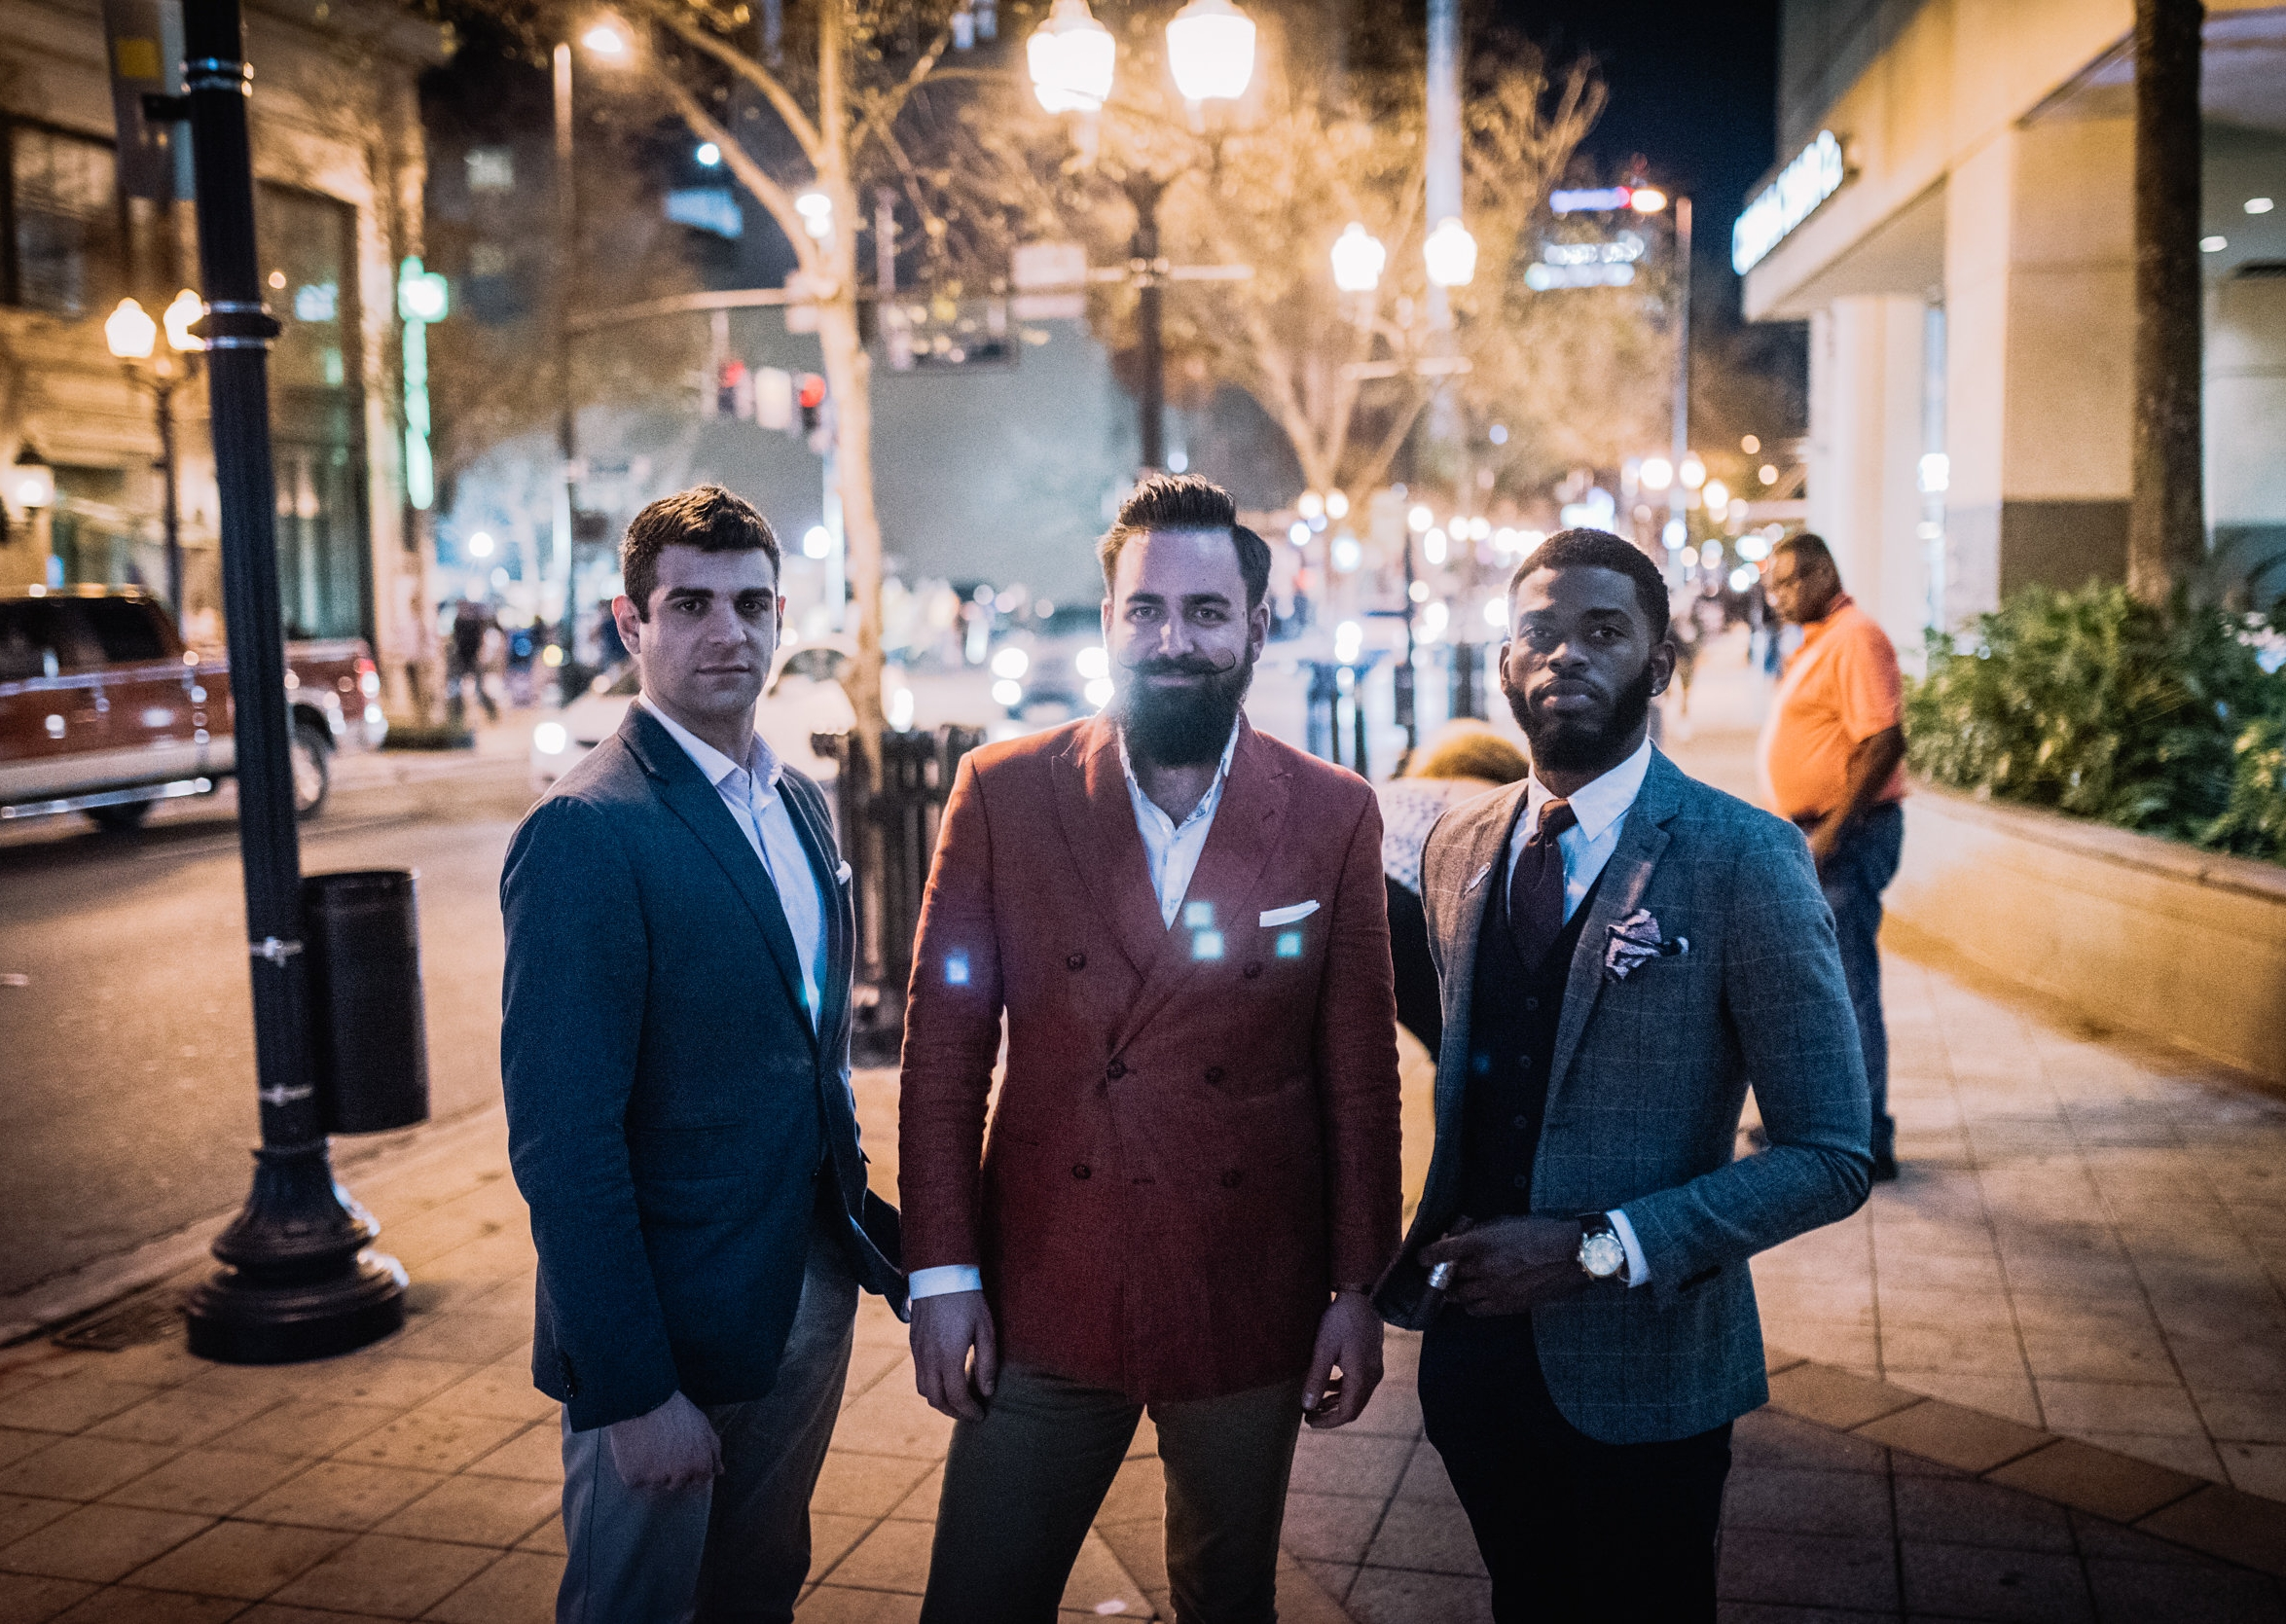 dapper night gregs style guide greg mcgregorson orlando mens fashion